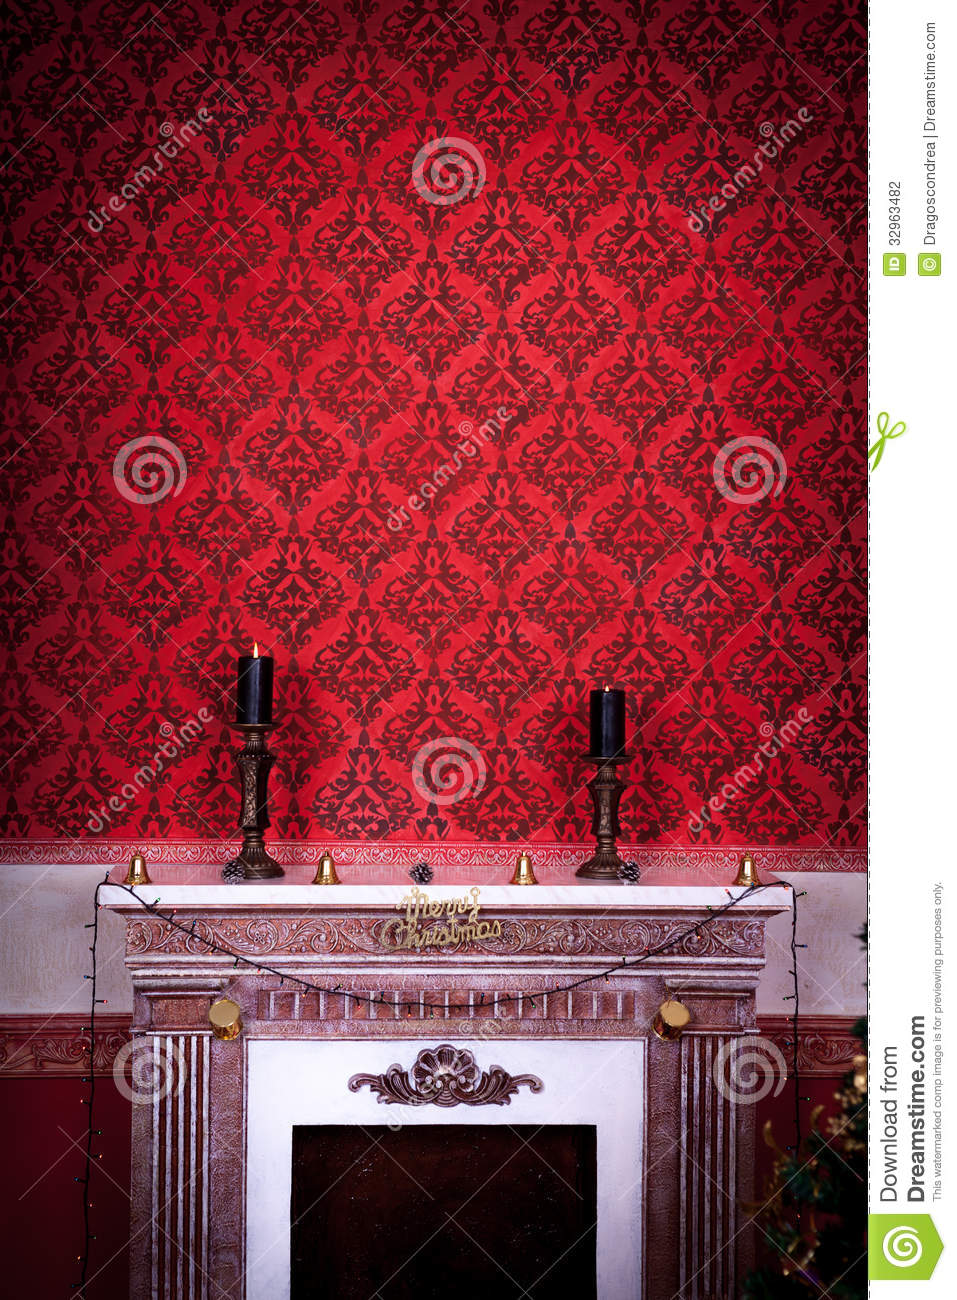 vintage room with two candels on a fireplace on a red background stock illustration